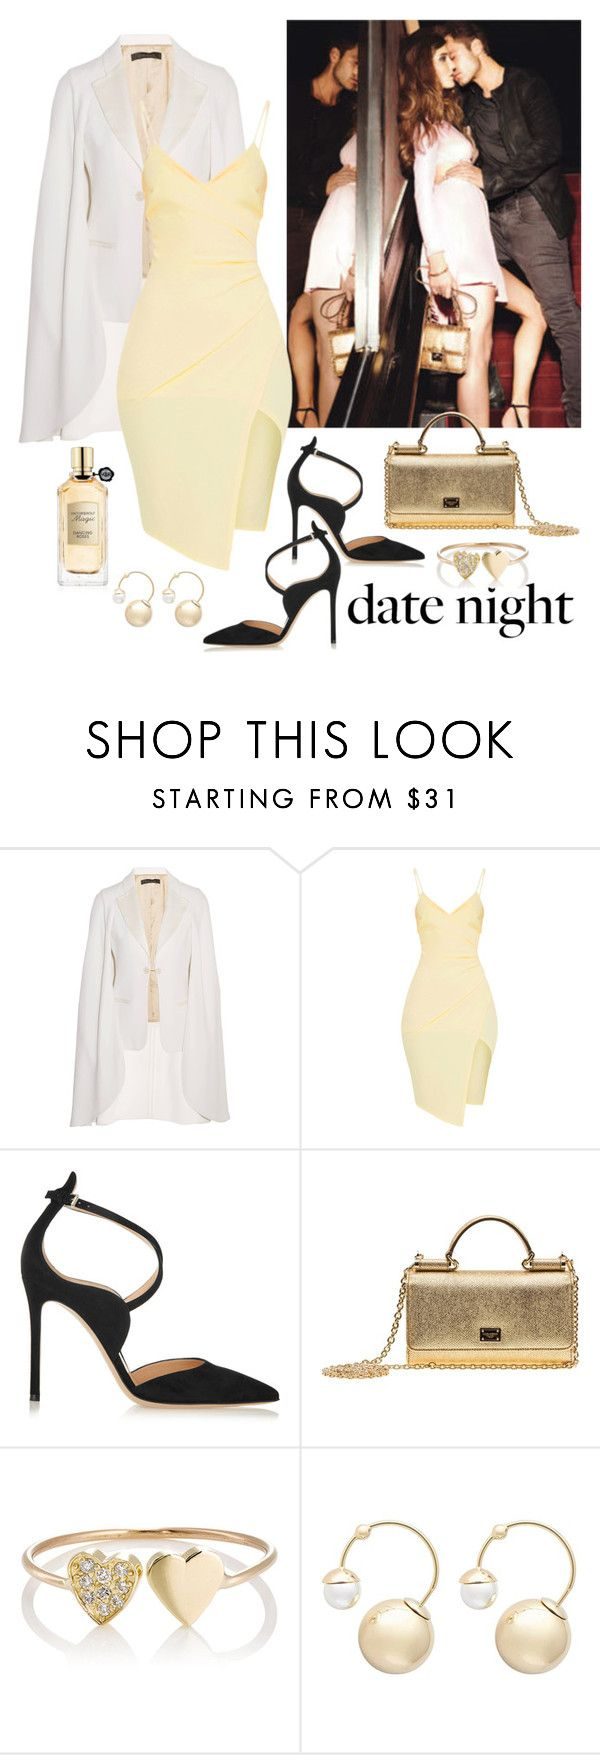 """""""Date Night in Satin"""" by giovanina-001 ❤ liked on Polyvore featuring Sebastian Professional, Elie Saab, Gianvito Rossi, Dolce&Gabbana, Jennifer Meyer Jewelry, Witchery and Viktor & Rolf"""